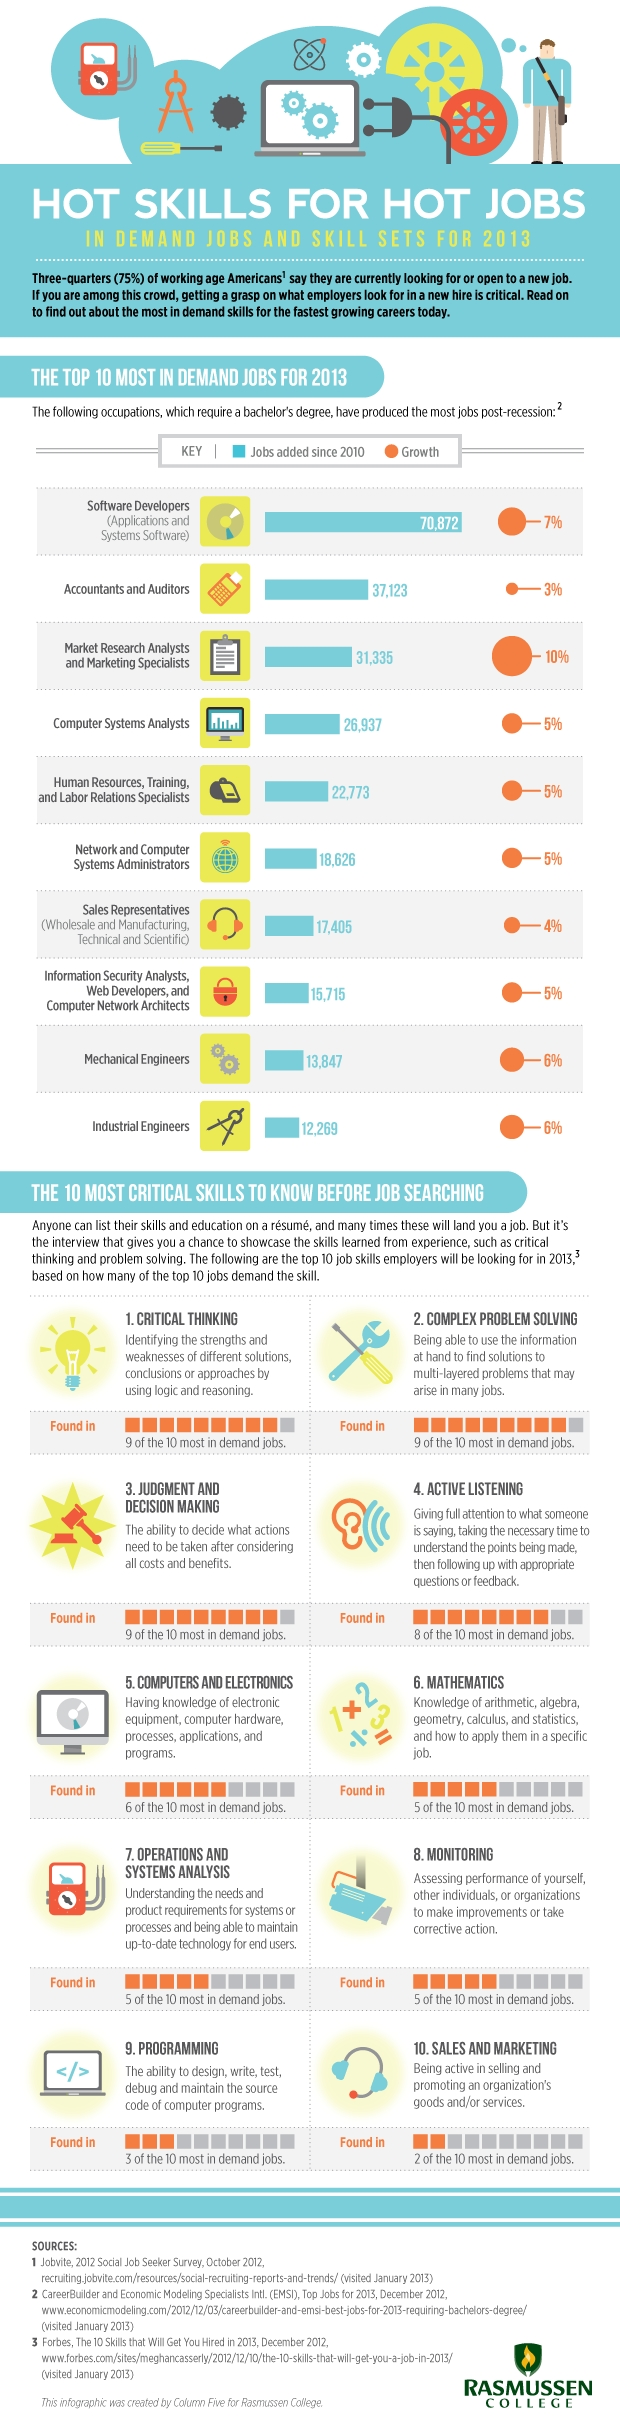 Hot Skill Sets for 2013